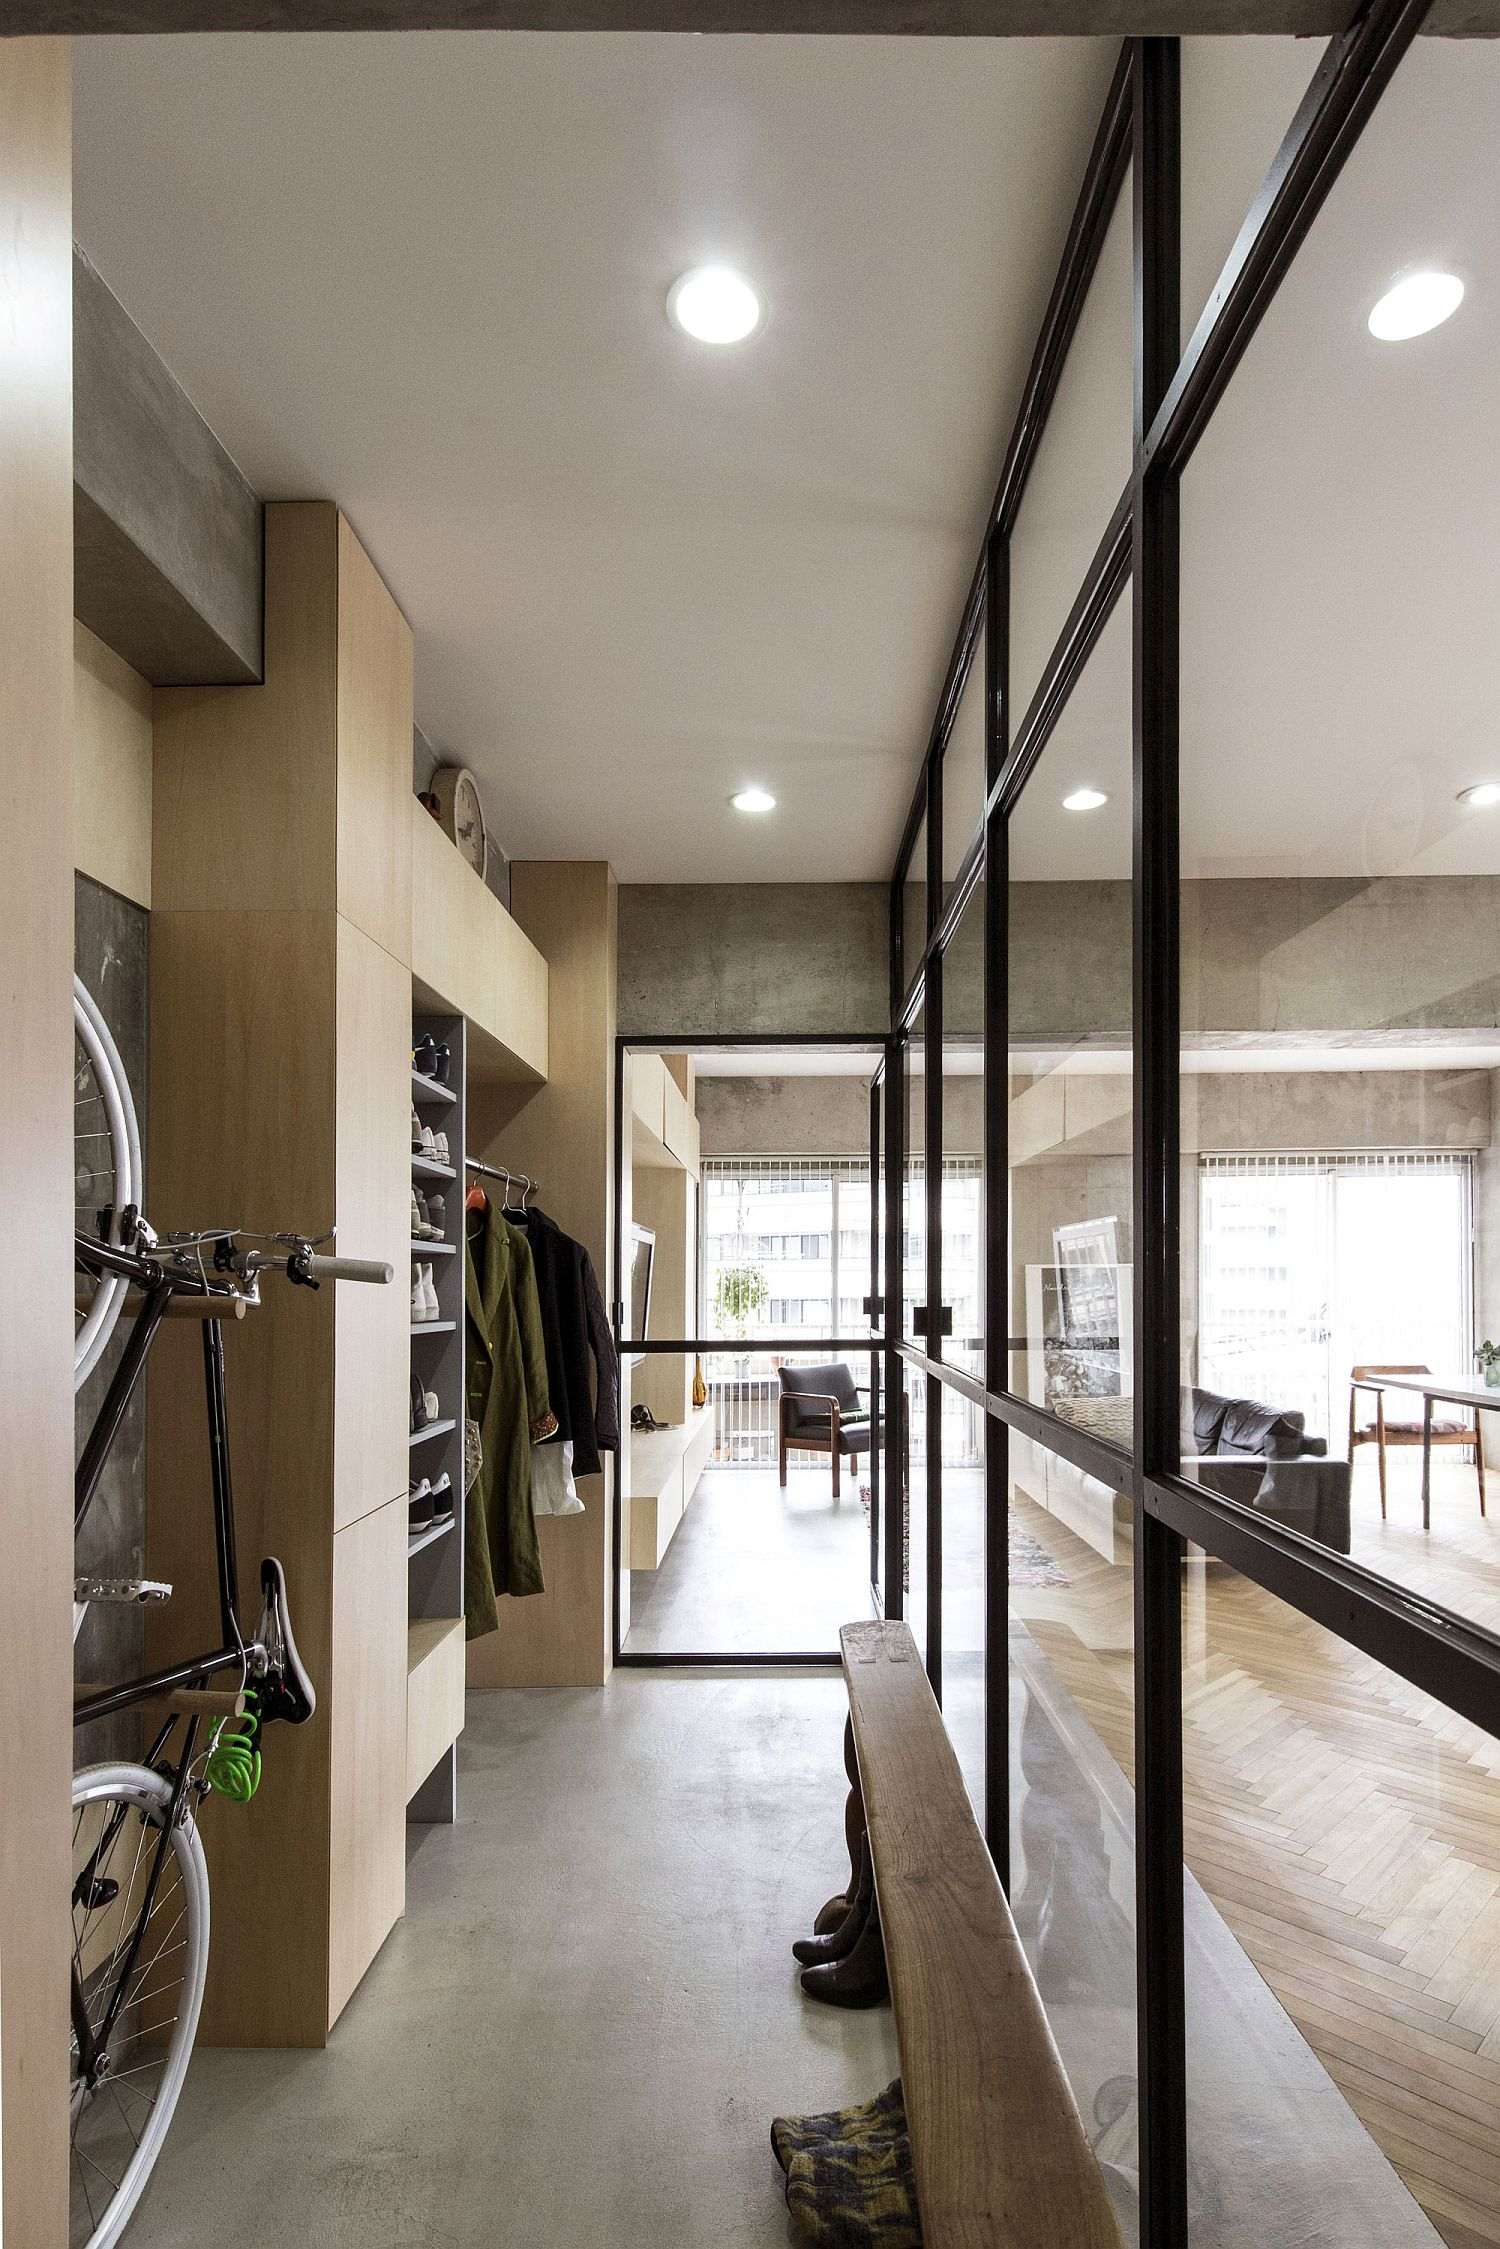 Glass partitions and bicycle display inside the Japanese condominium